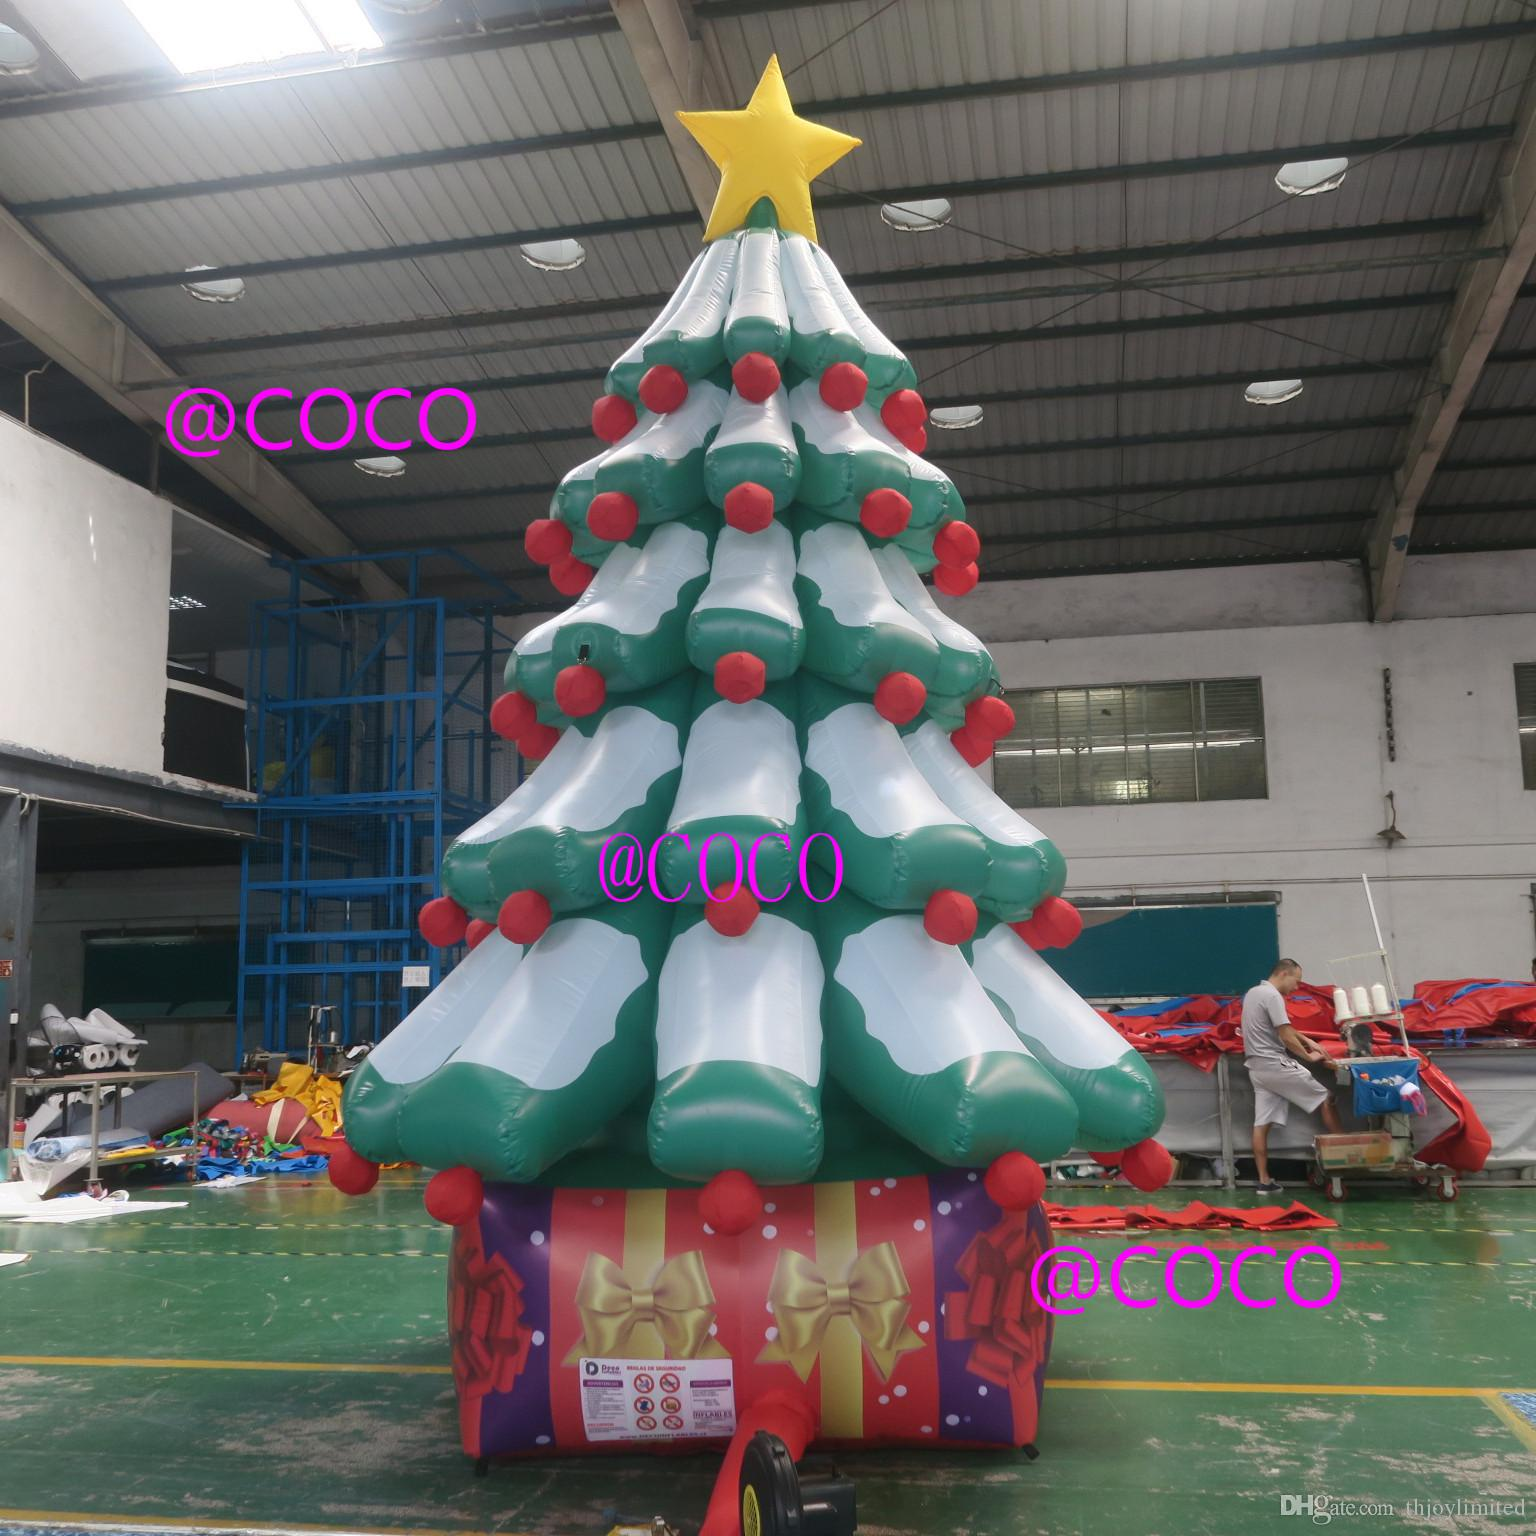 Christmas Tree Inflatables.Giant Outdoor Giant Inflatable Christmas Tree Outdoor Inflatable Christmas Decoration Christmas Inflatables Tree